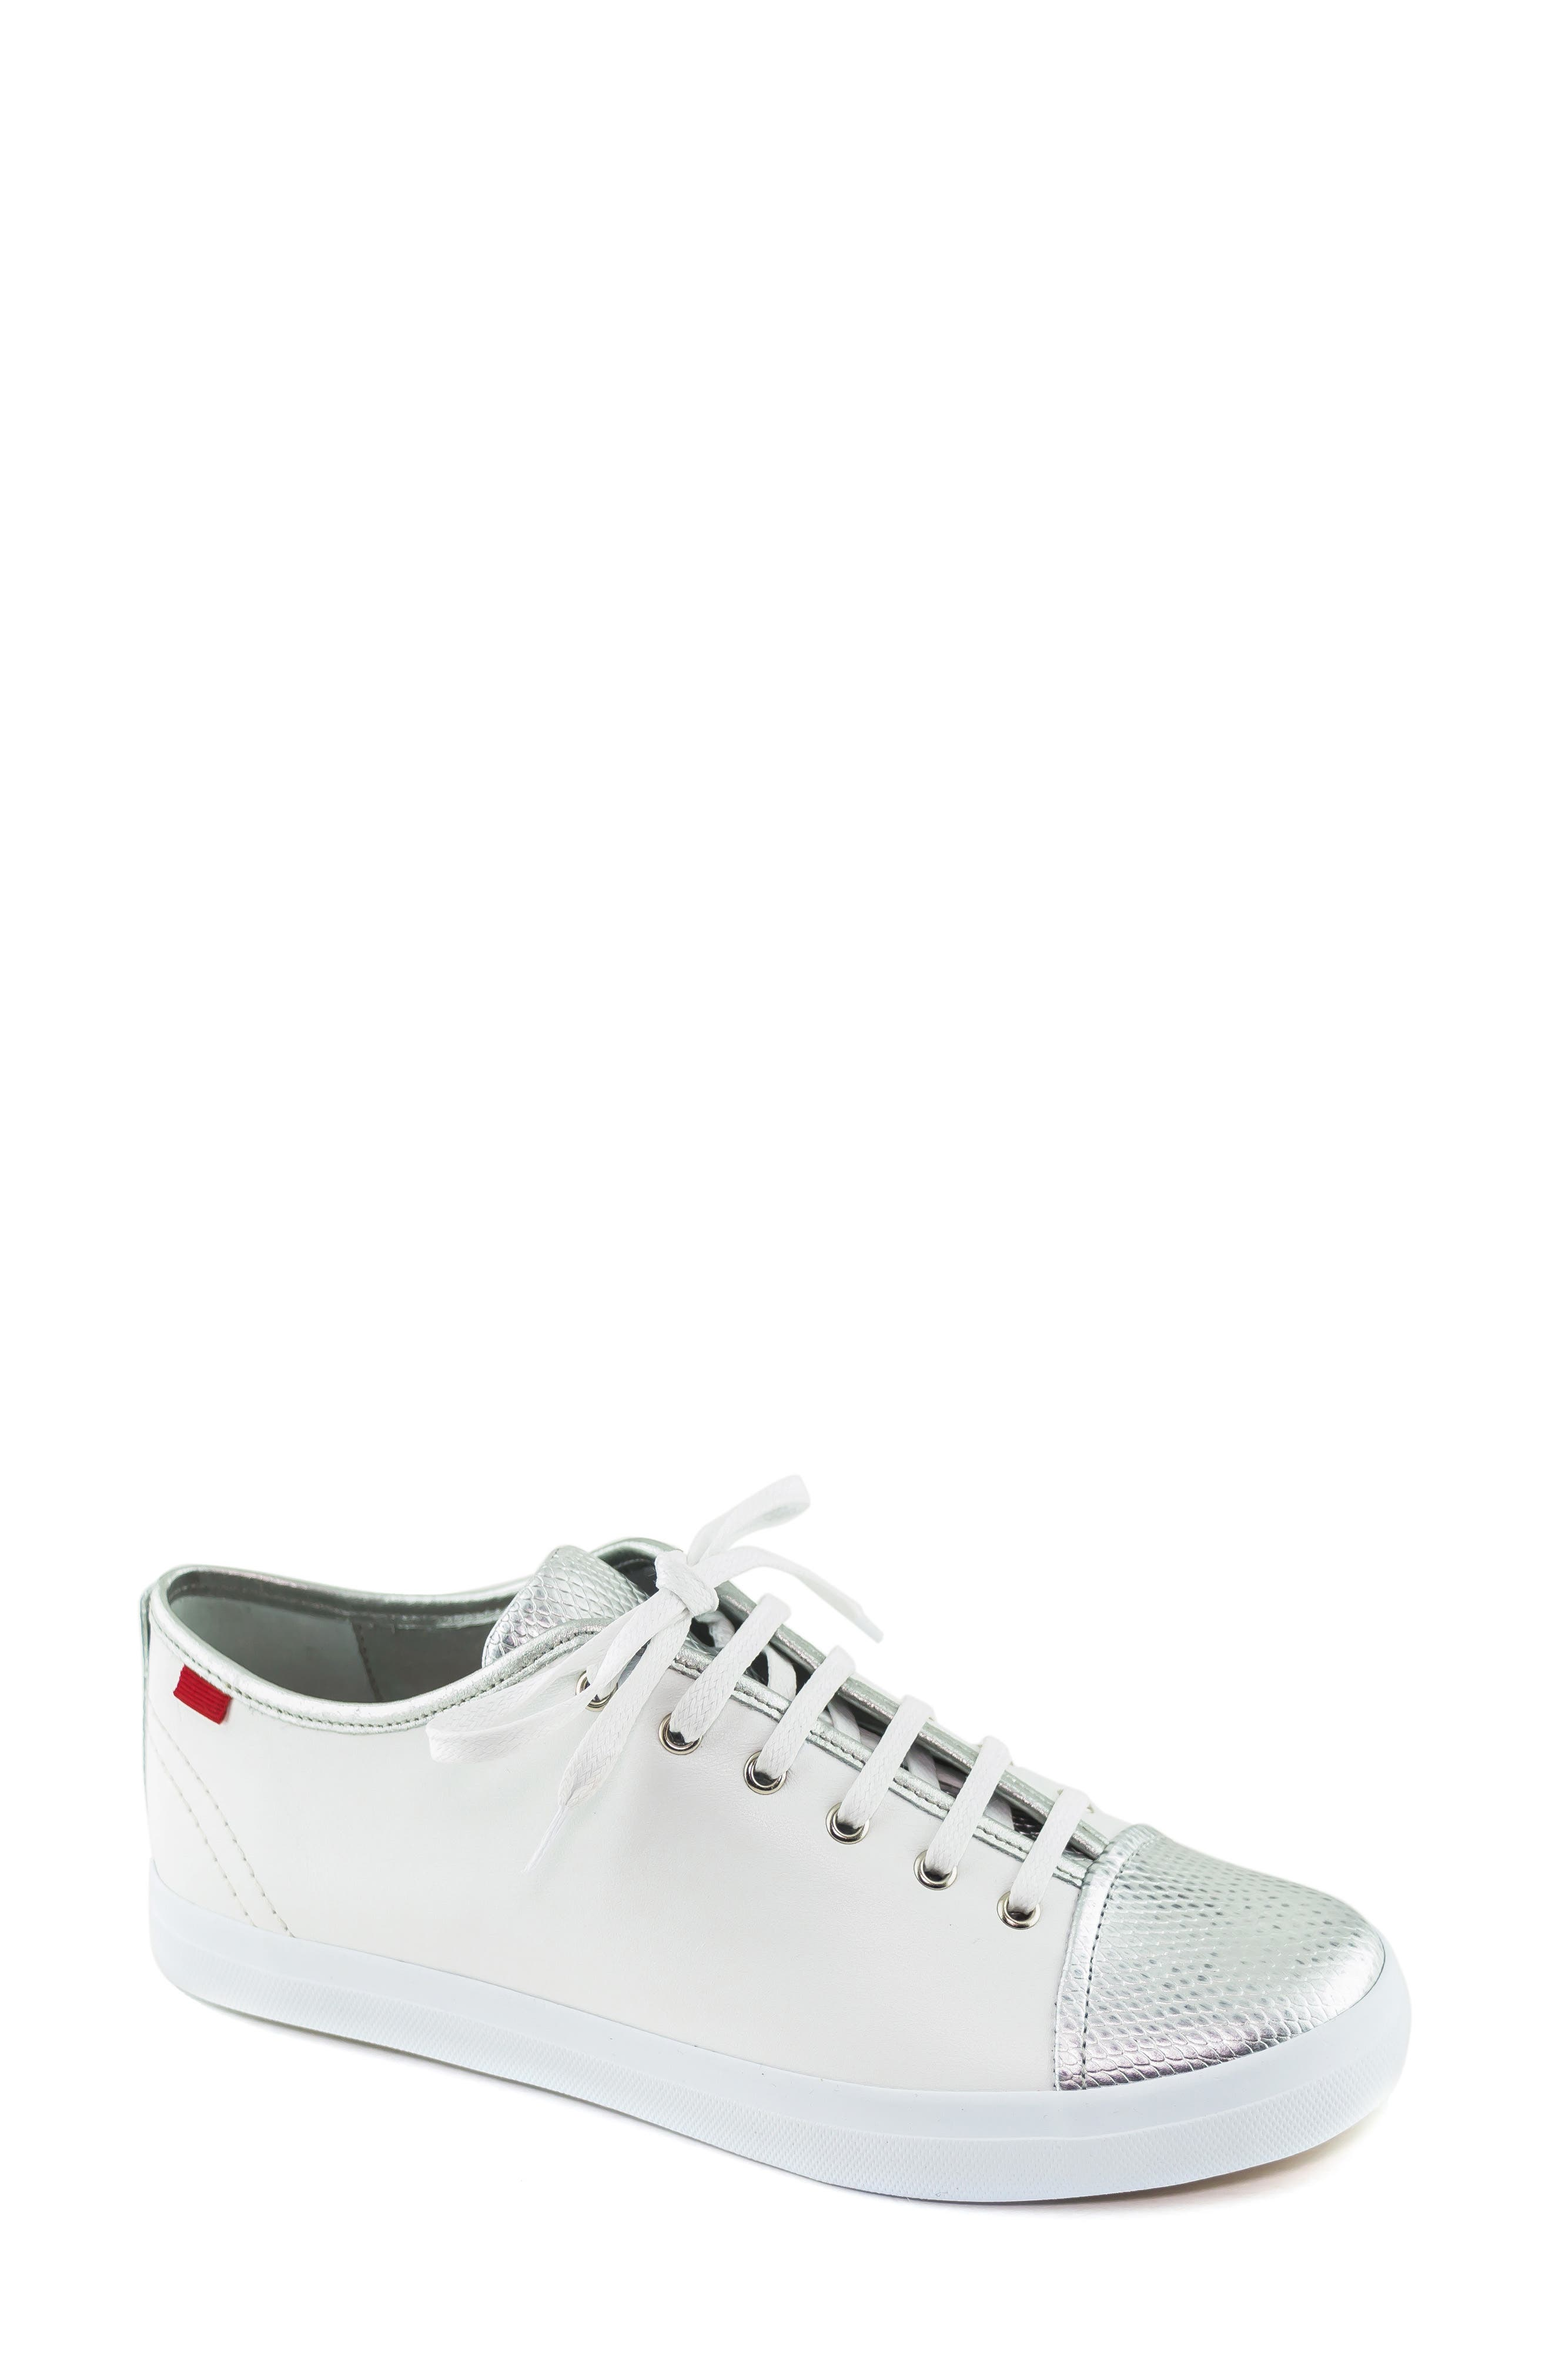 MARC JOSEPH NEW YORK, Bleecker Street Sneaker, Main thumbnail 1, color, WHITE/ GIPSY SILVER LEATHER